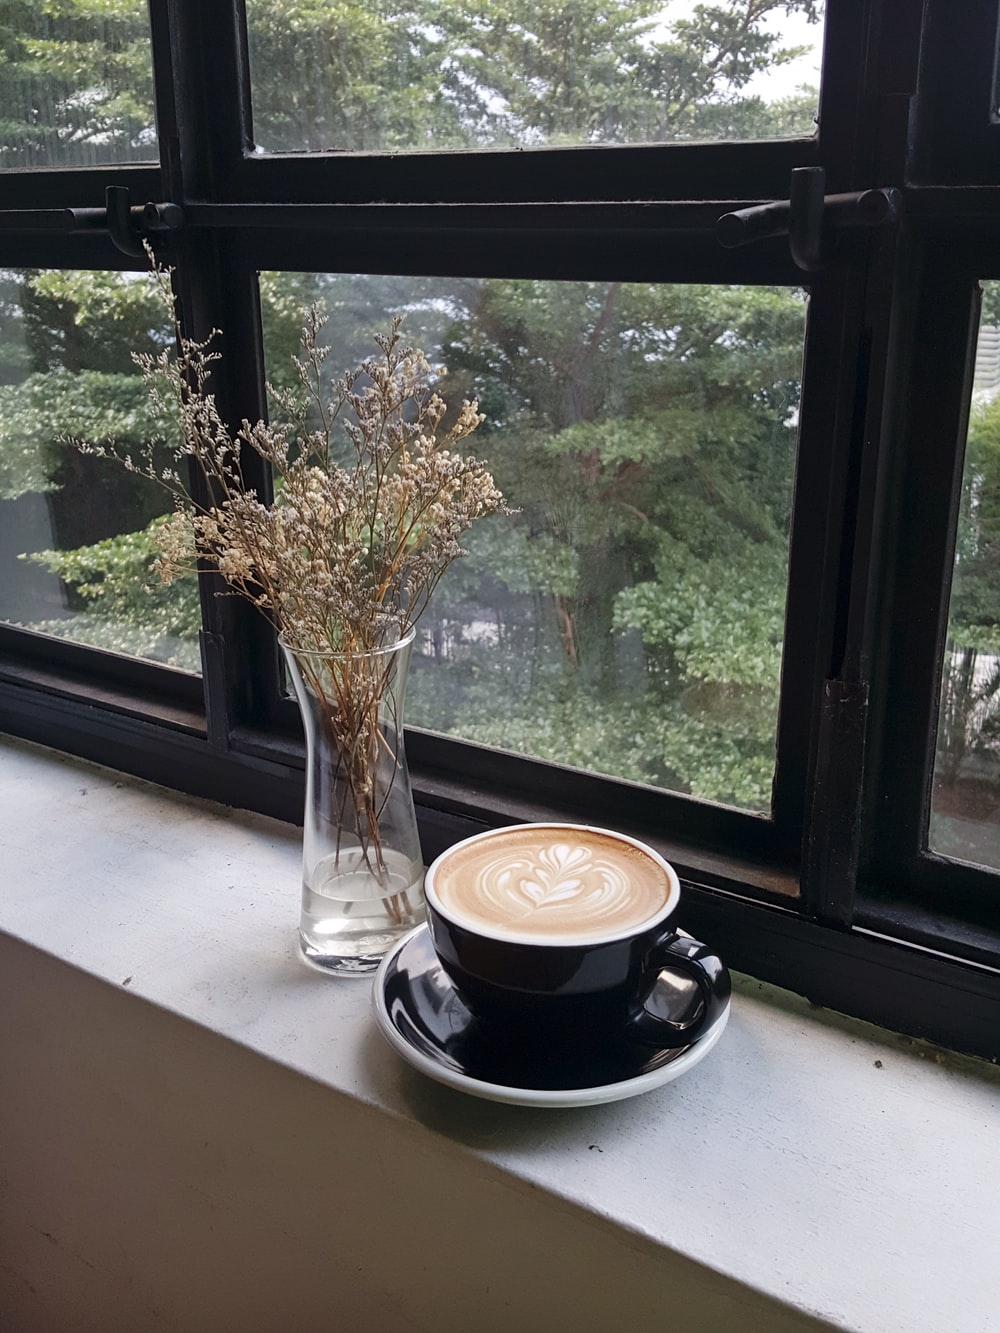 black ceramic coffee mug on window